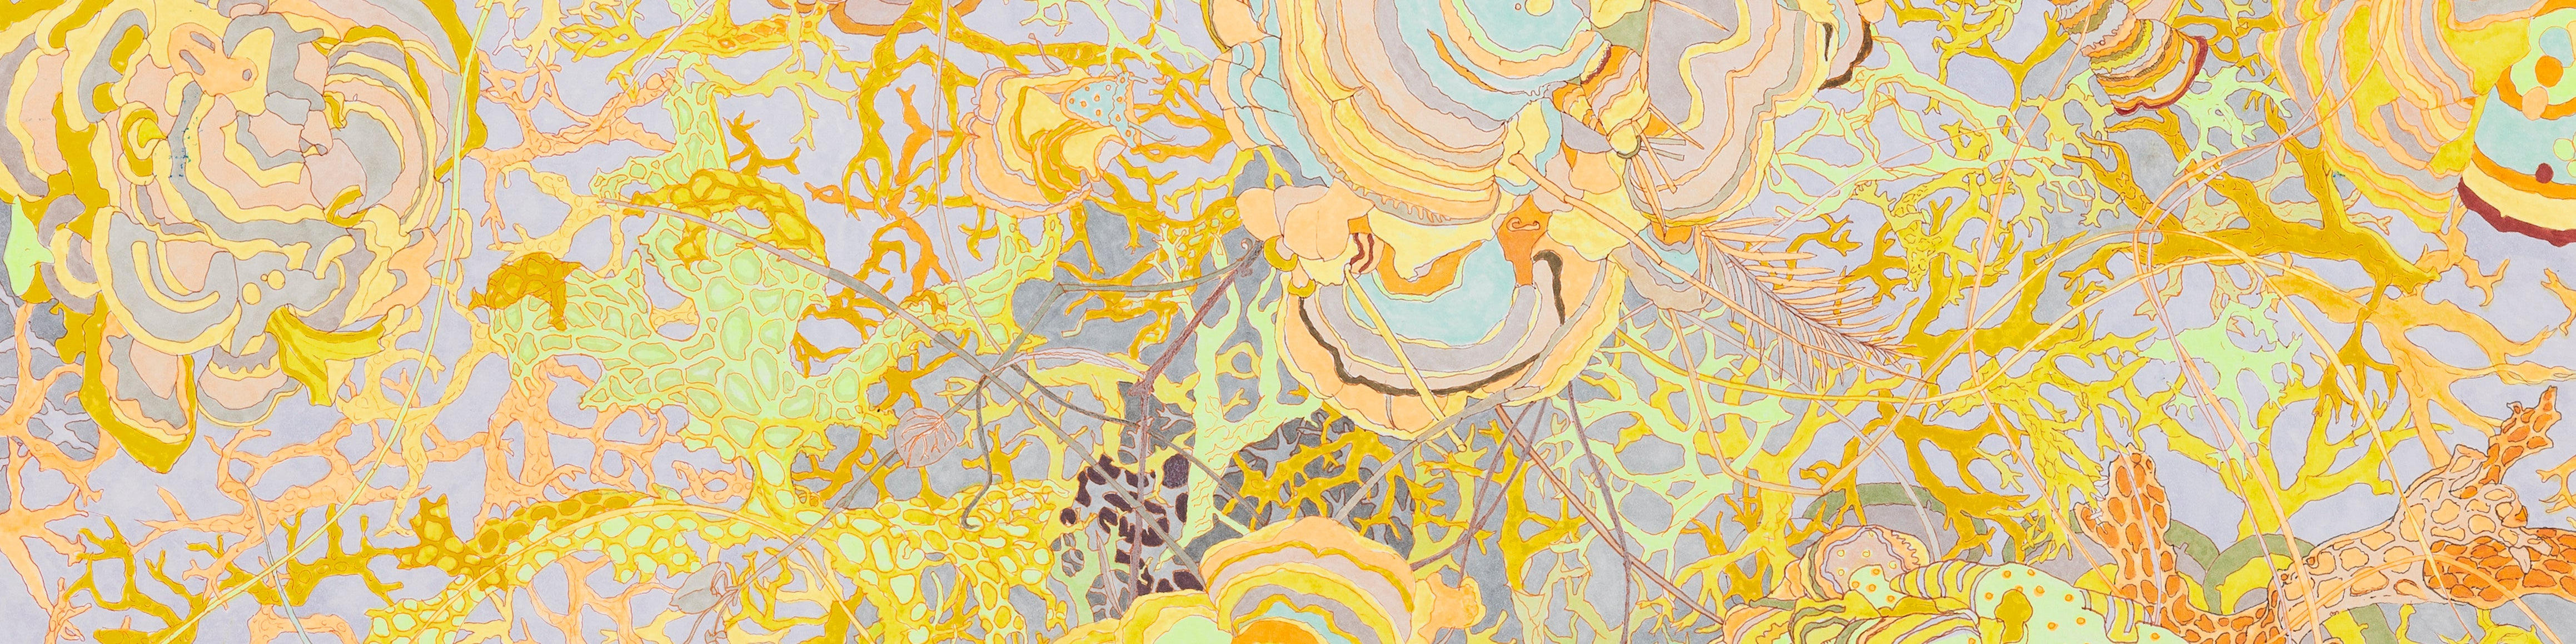 Polypore fungi drawn in a art nouveau style with a profusion of color